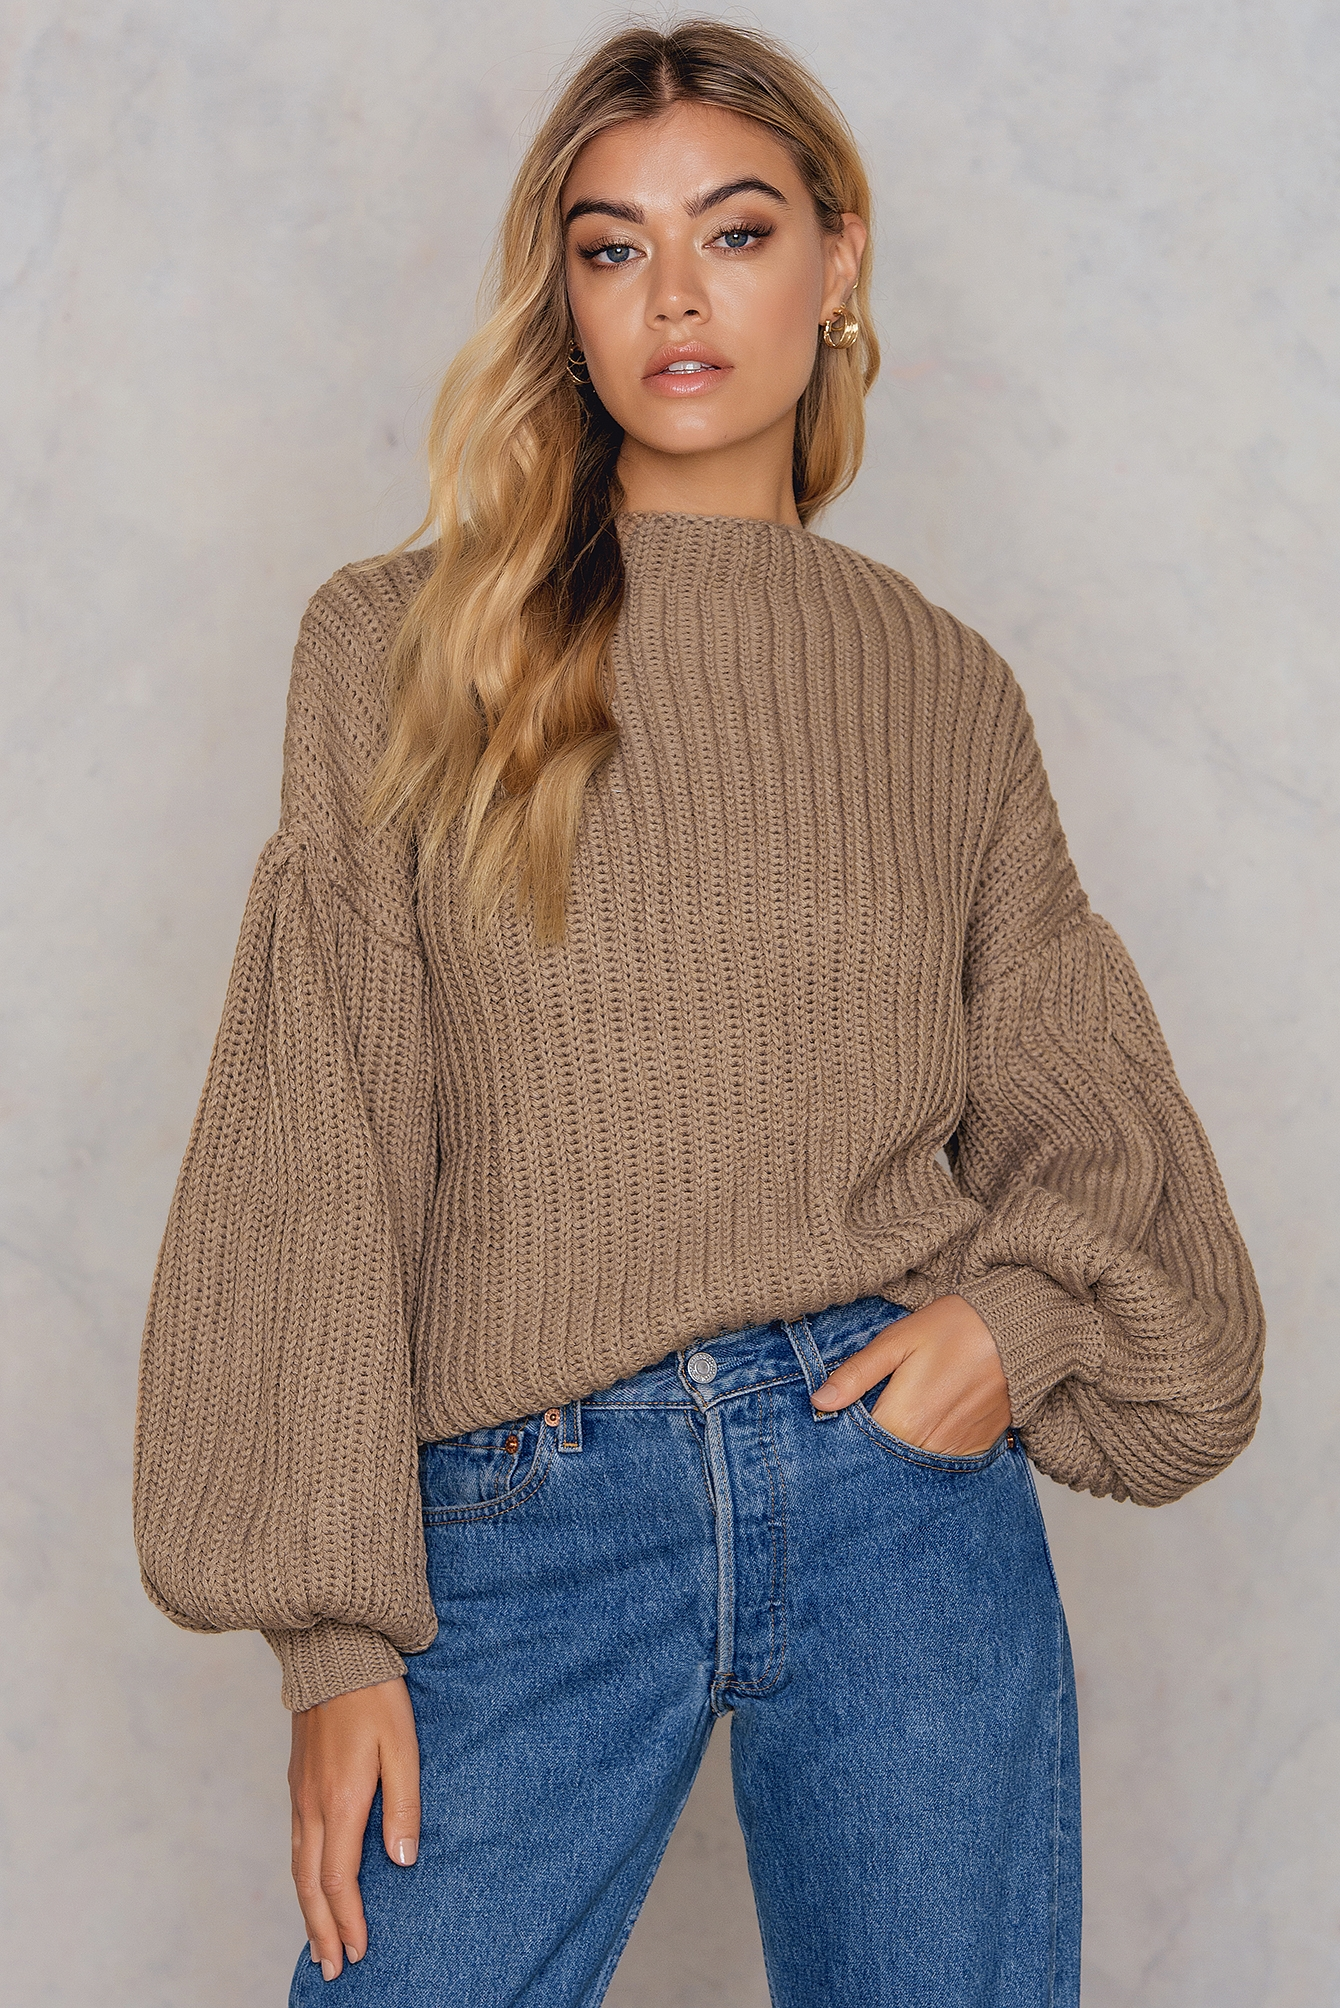 Balloon Sleeve Knitted Sweater